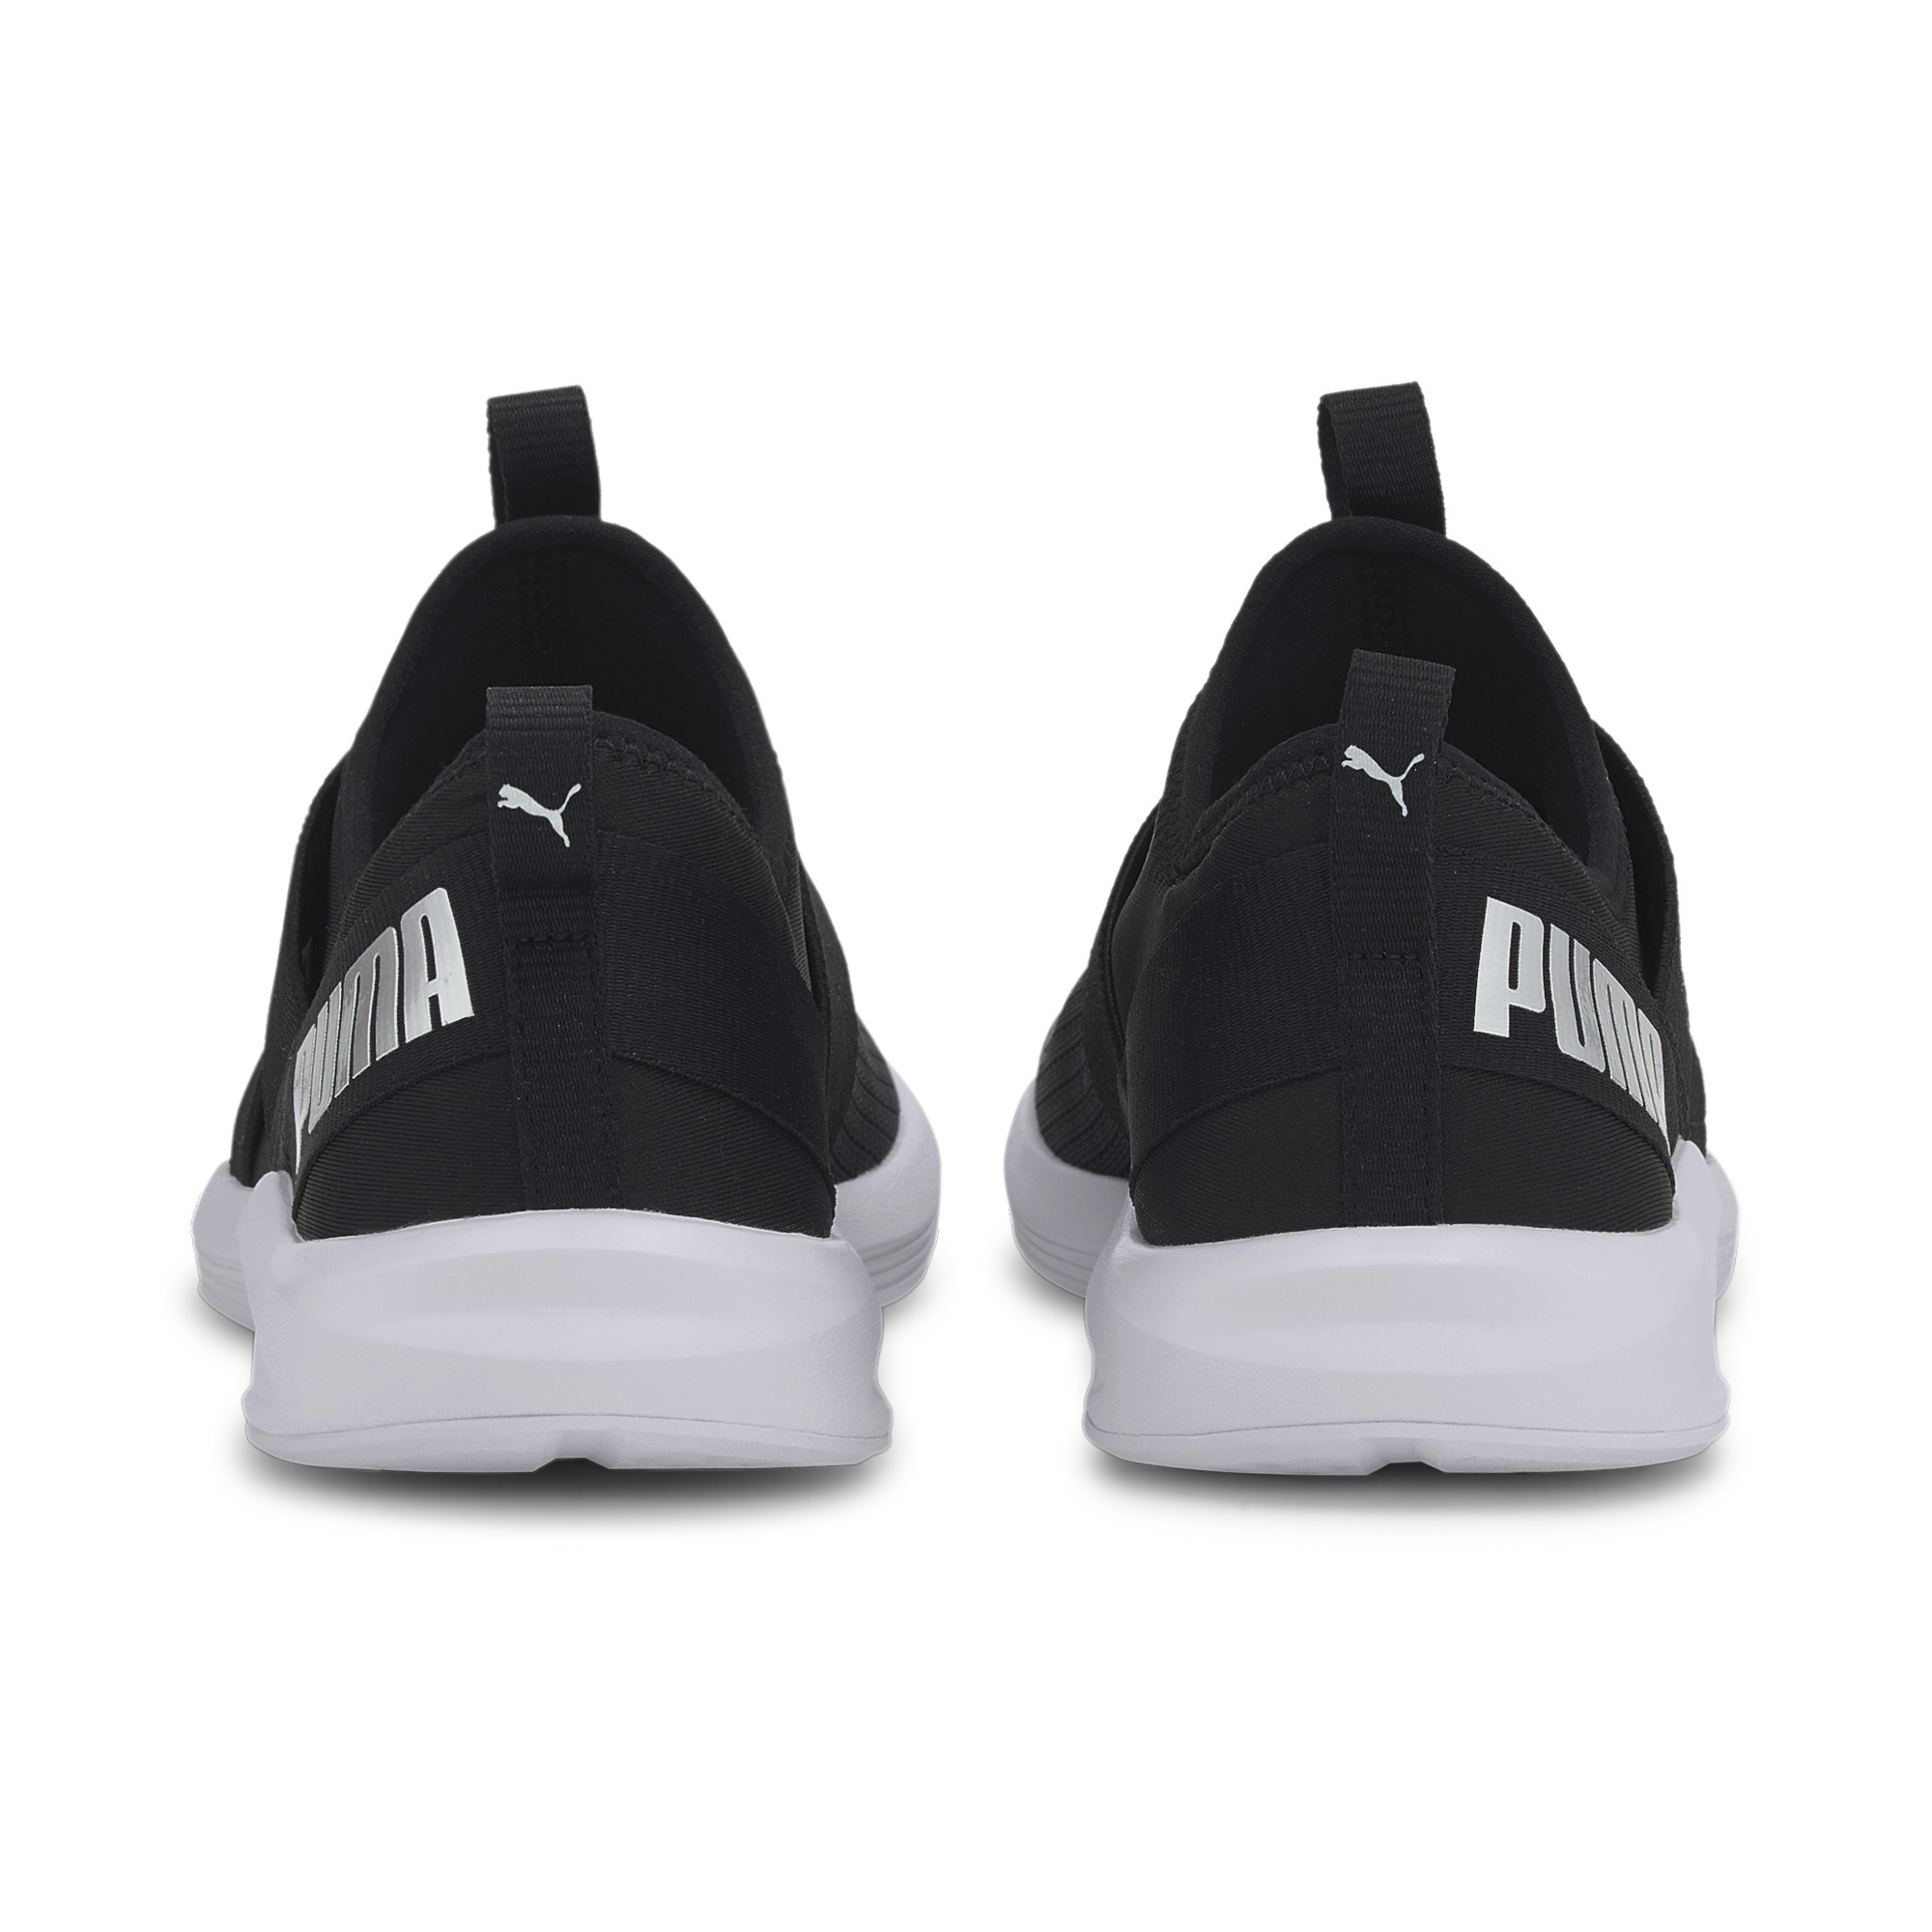 PUMA-Women-039-s-Prowl-Slip-On-Training-Shoes thumbnail 22